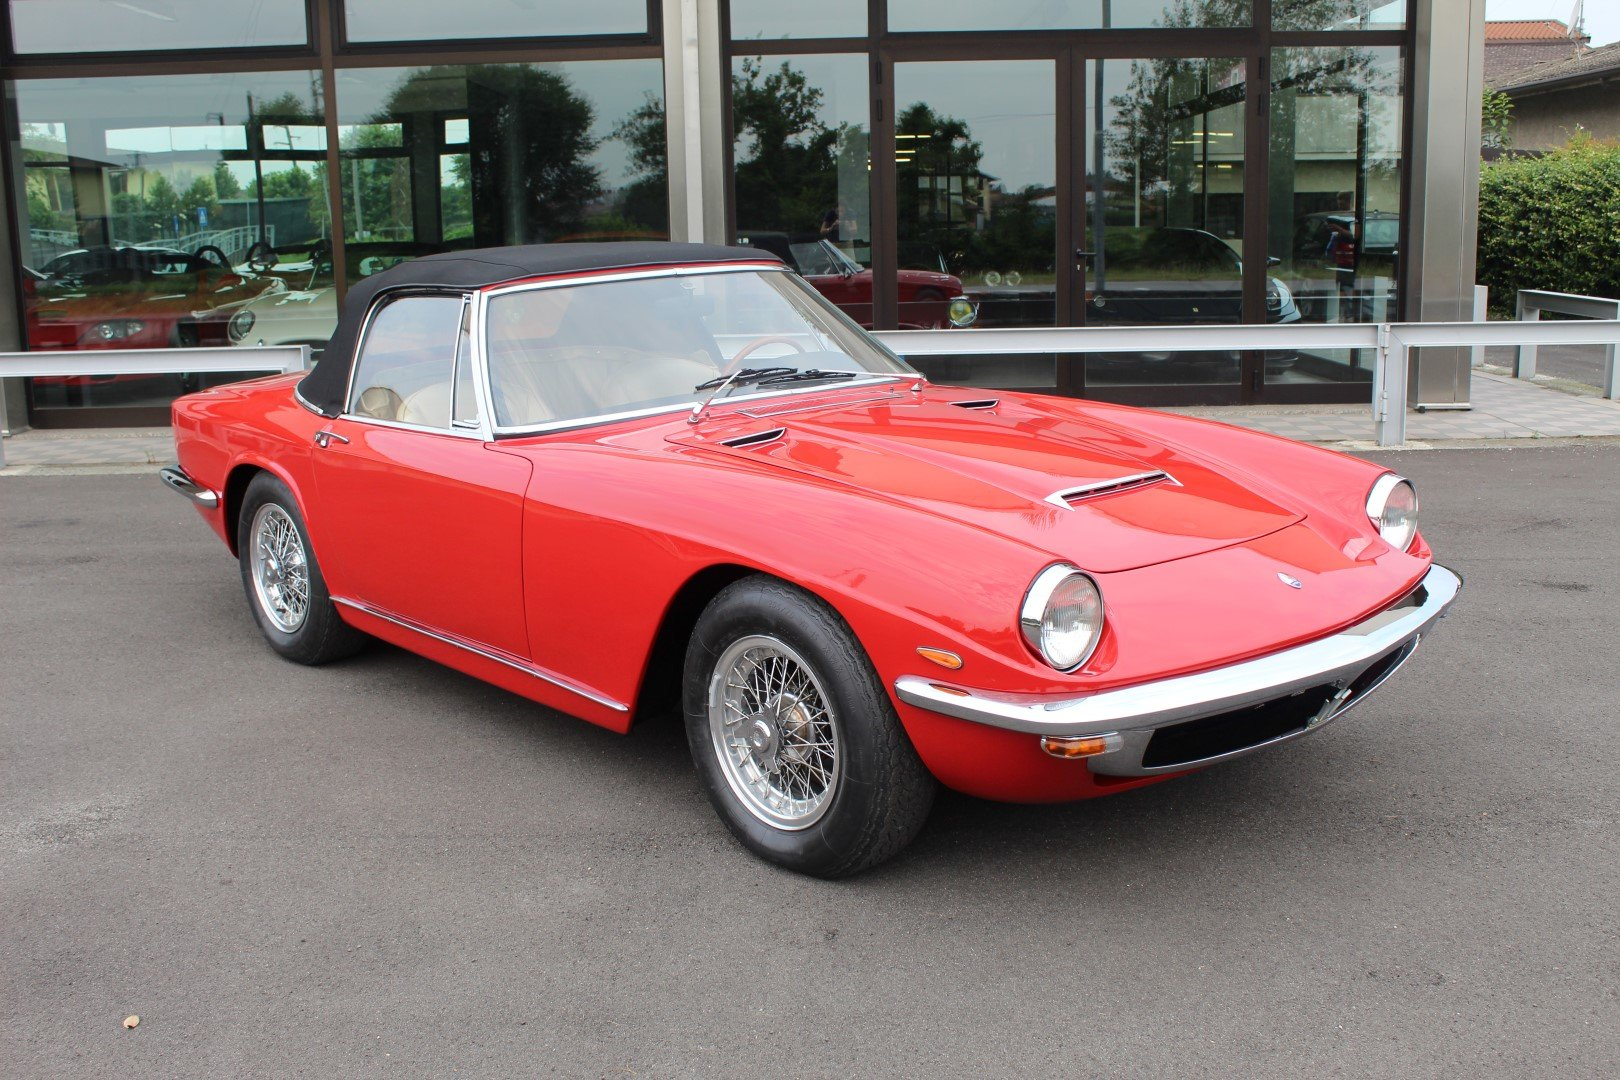 1965 Maserati Mistral 3.7 Spyder For Sale (picture 1 of 6)